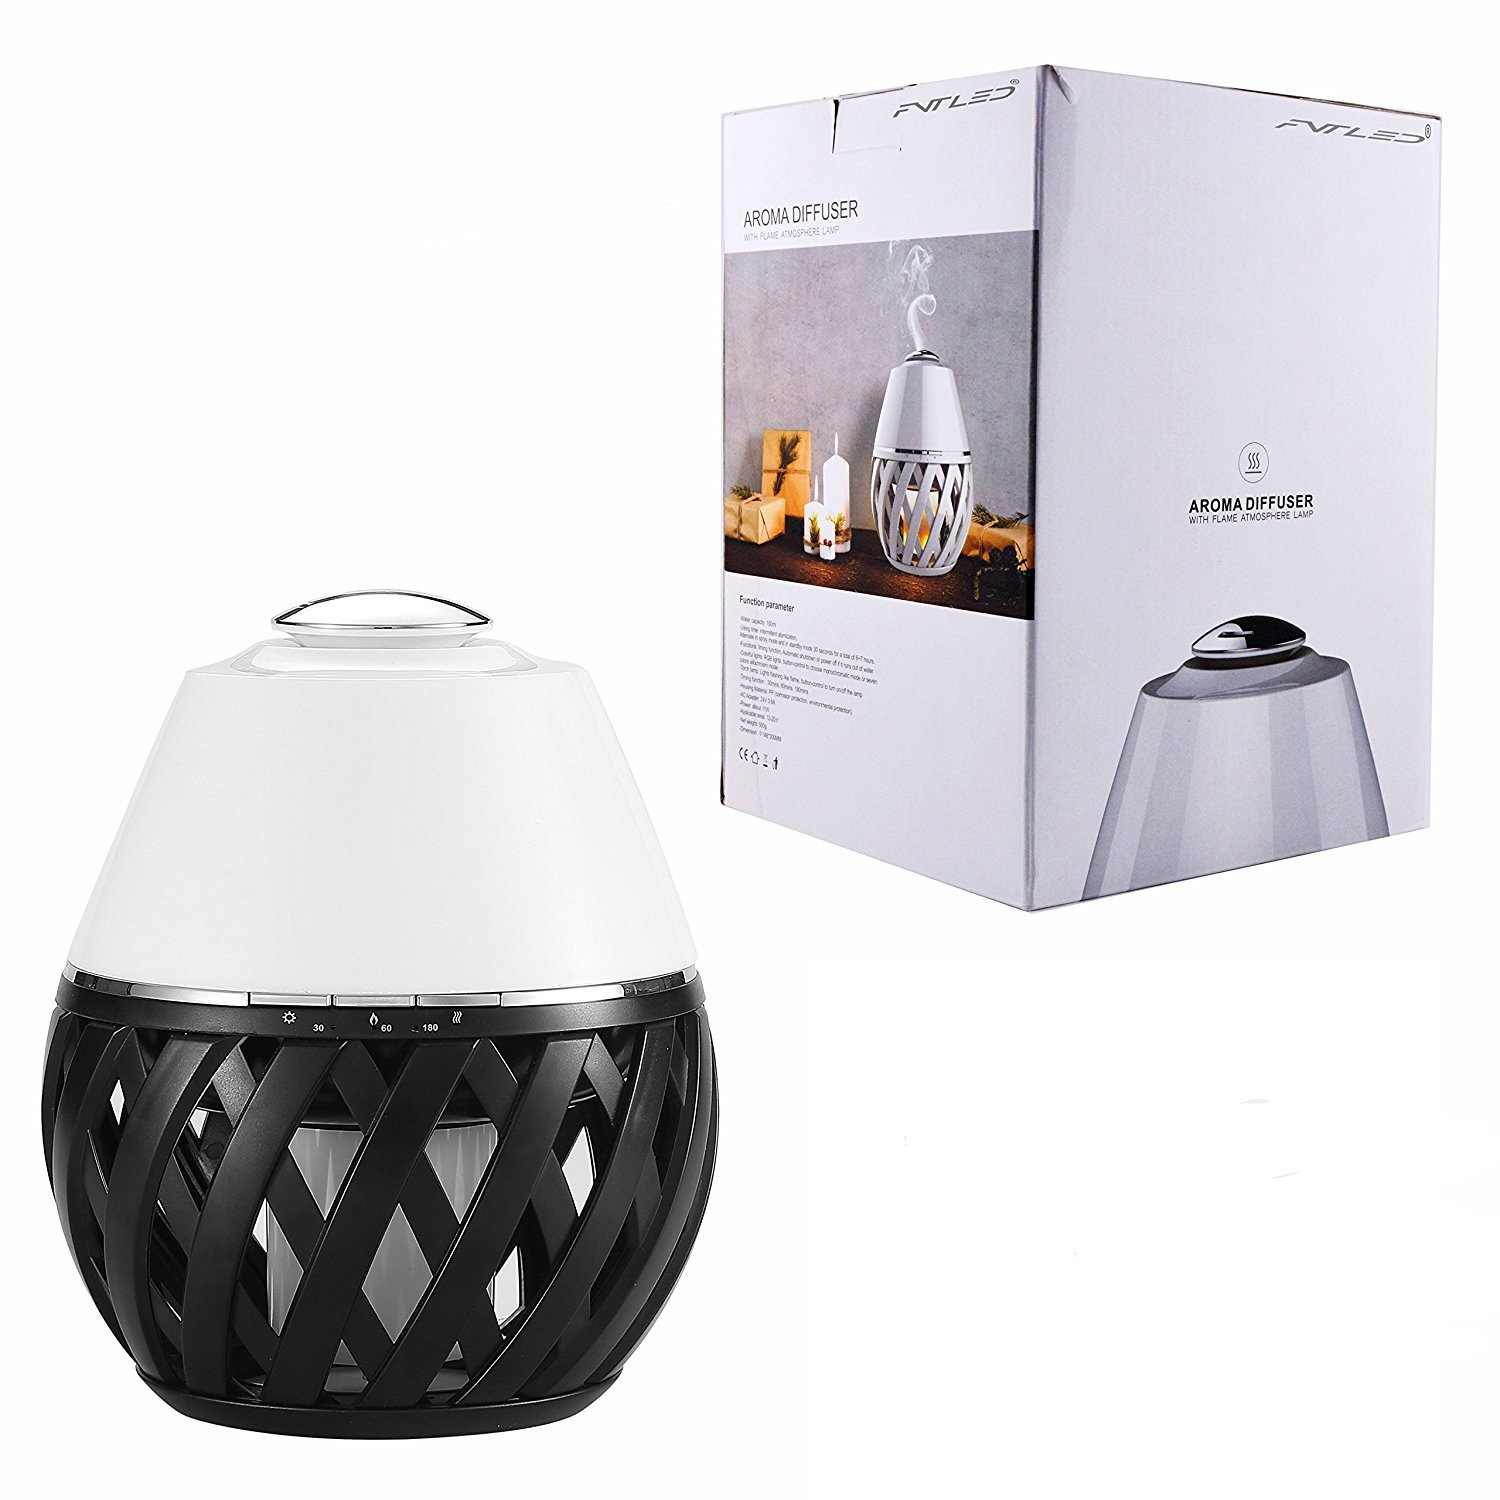 Sumaote LED Flame Lamp Aroma Diffuser, Torch Atmosphere Light With LED Flicker Yellow Dancing Light & Aroma Diffuser 150ml Humidifier Oil Diffuser with Timing Function for Spa Bedroom Babyroom by Sumaote (Image #7)